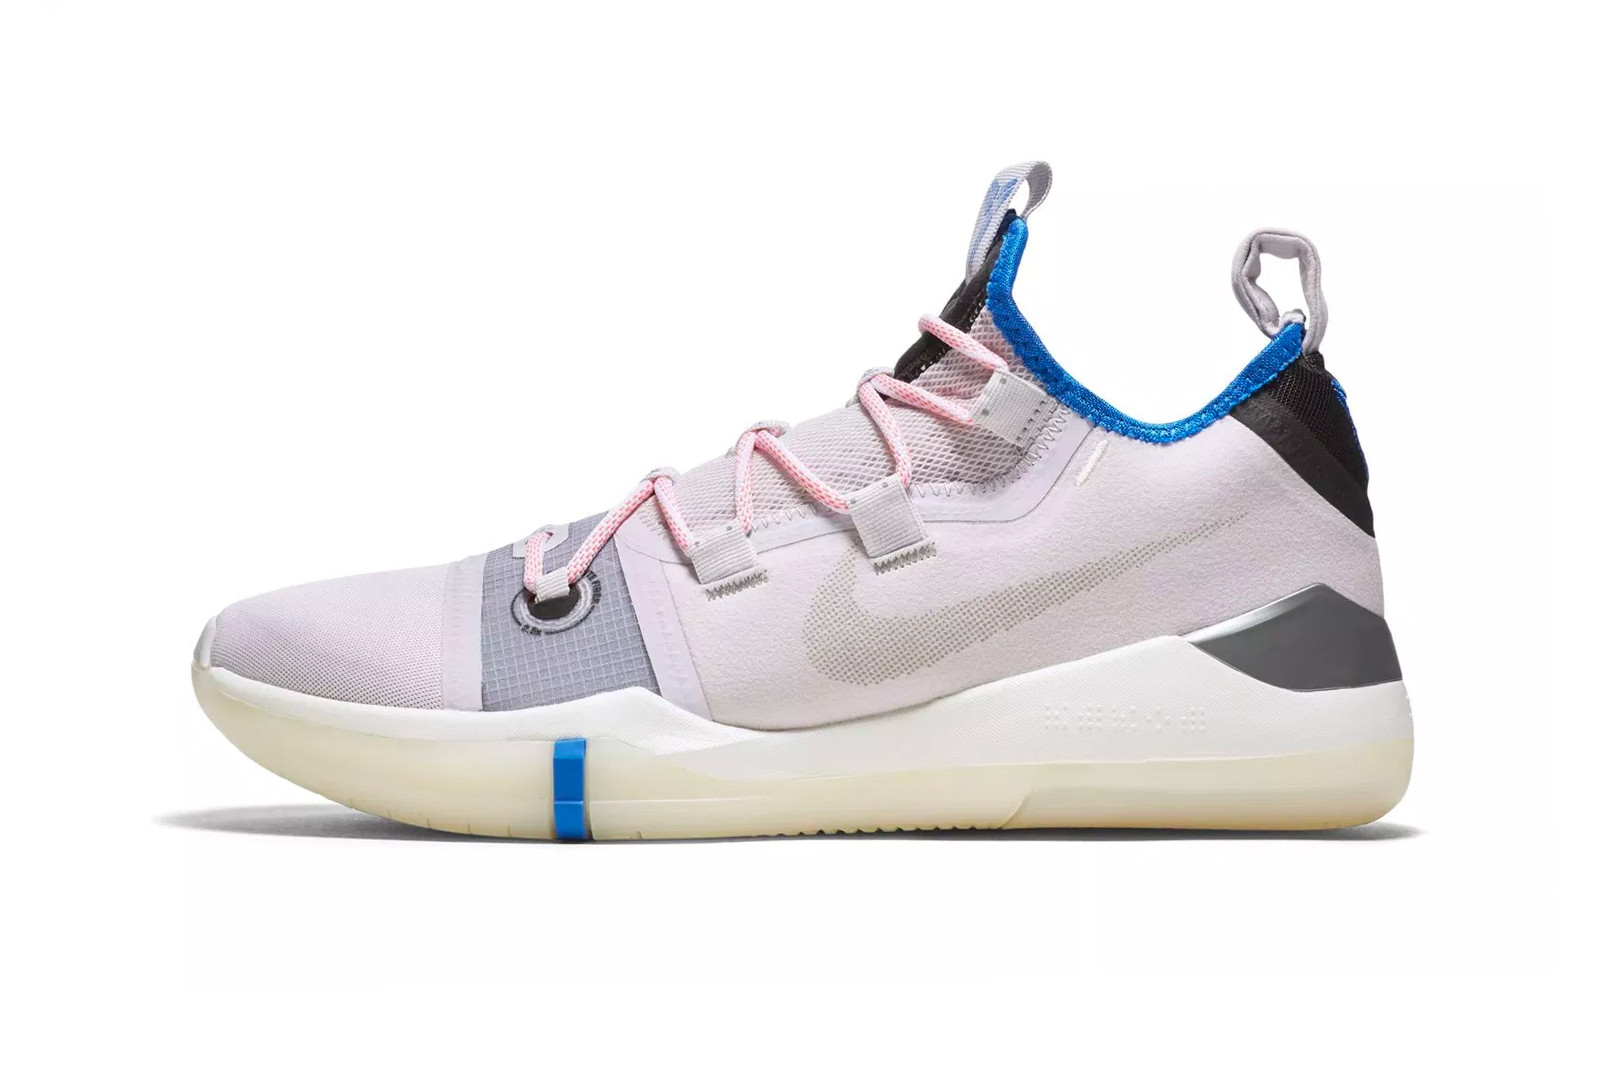 Kobe A.D. Gets Reworked in Light Pink